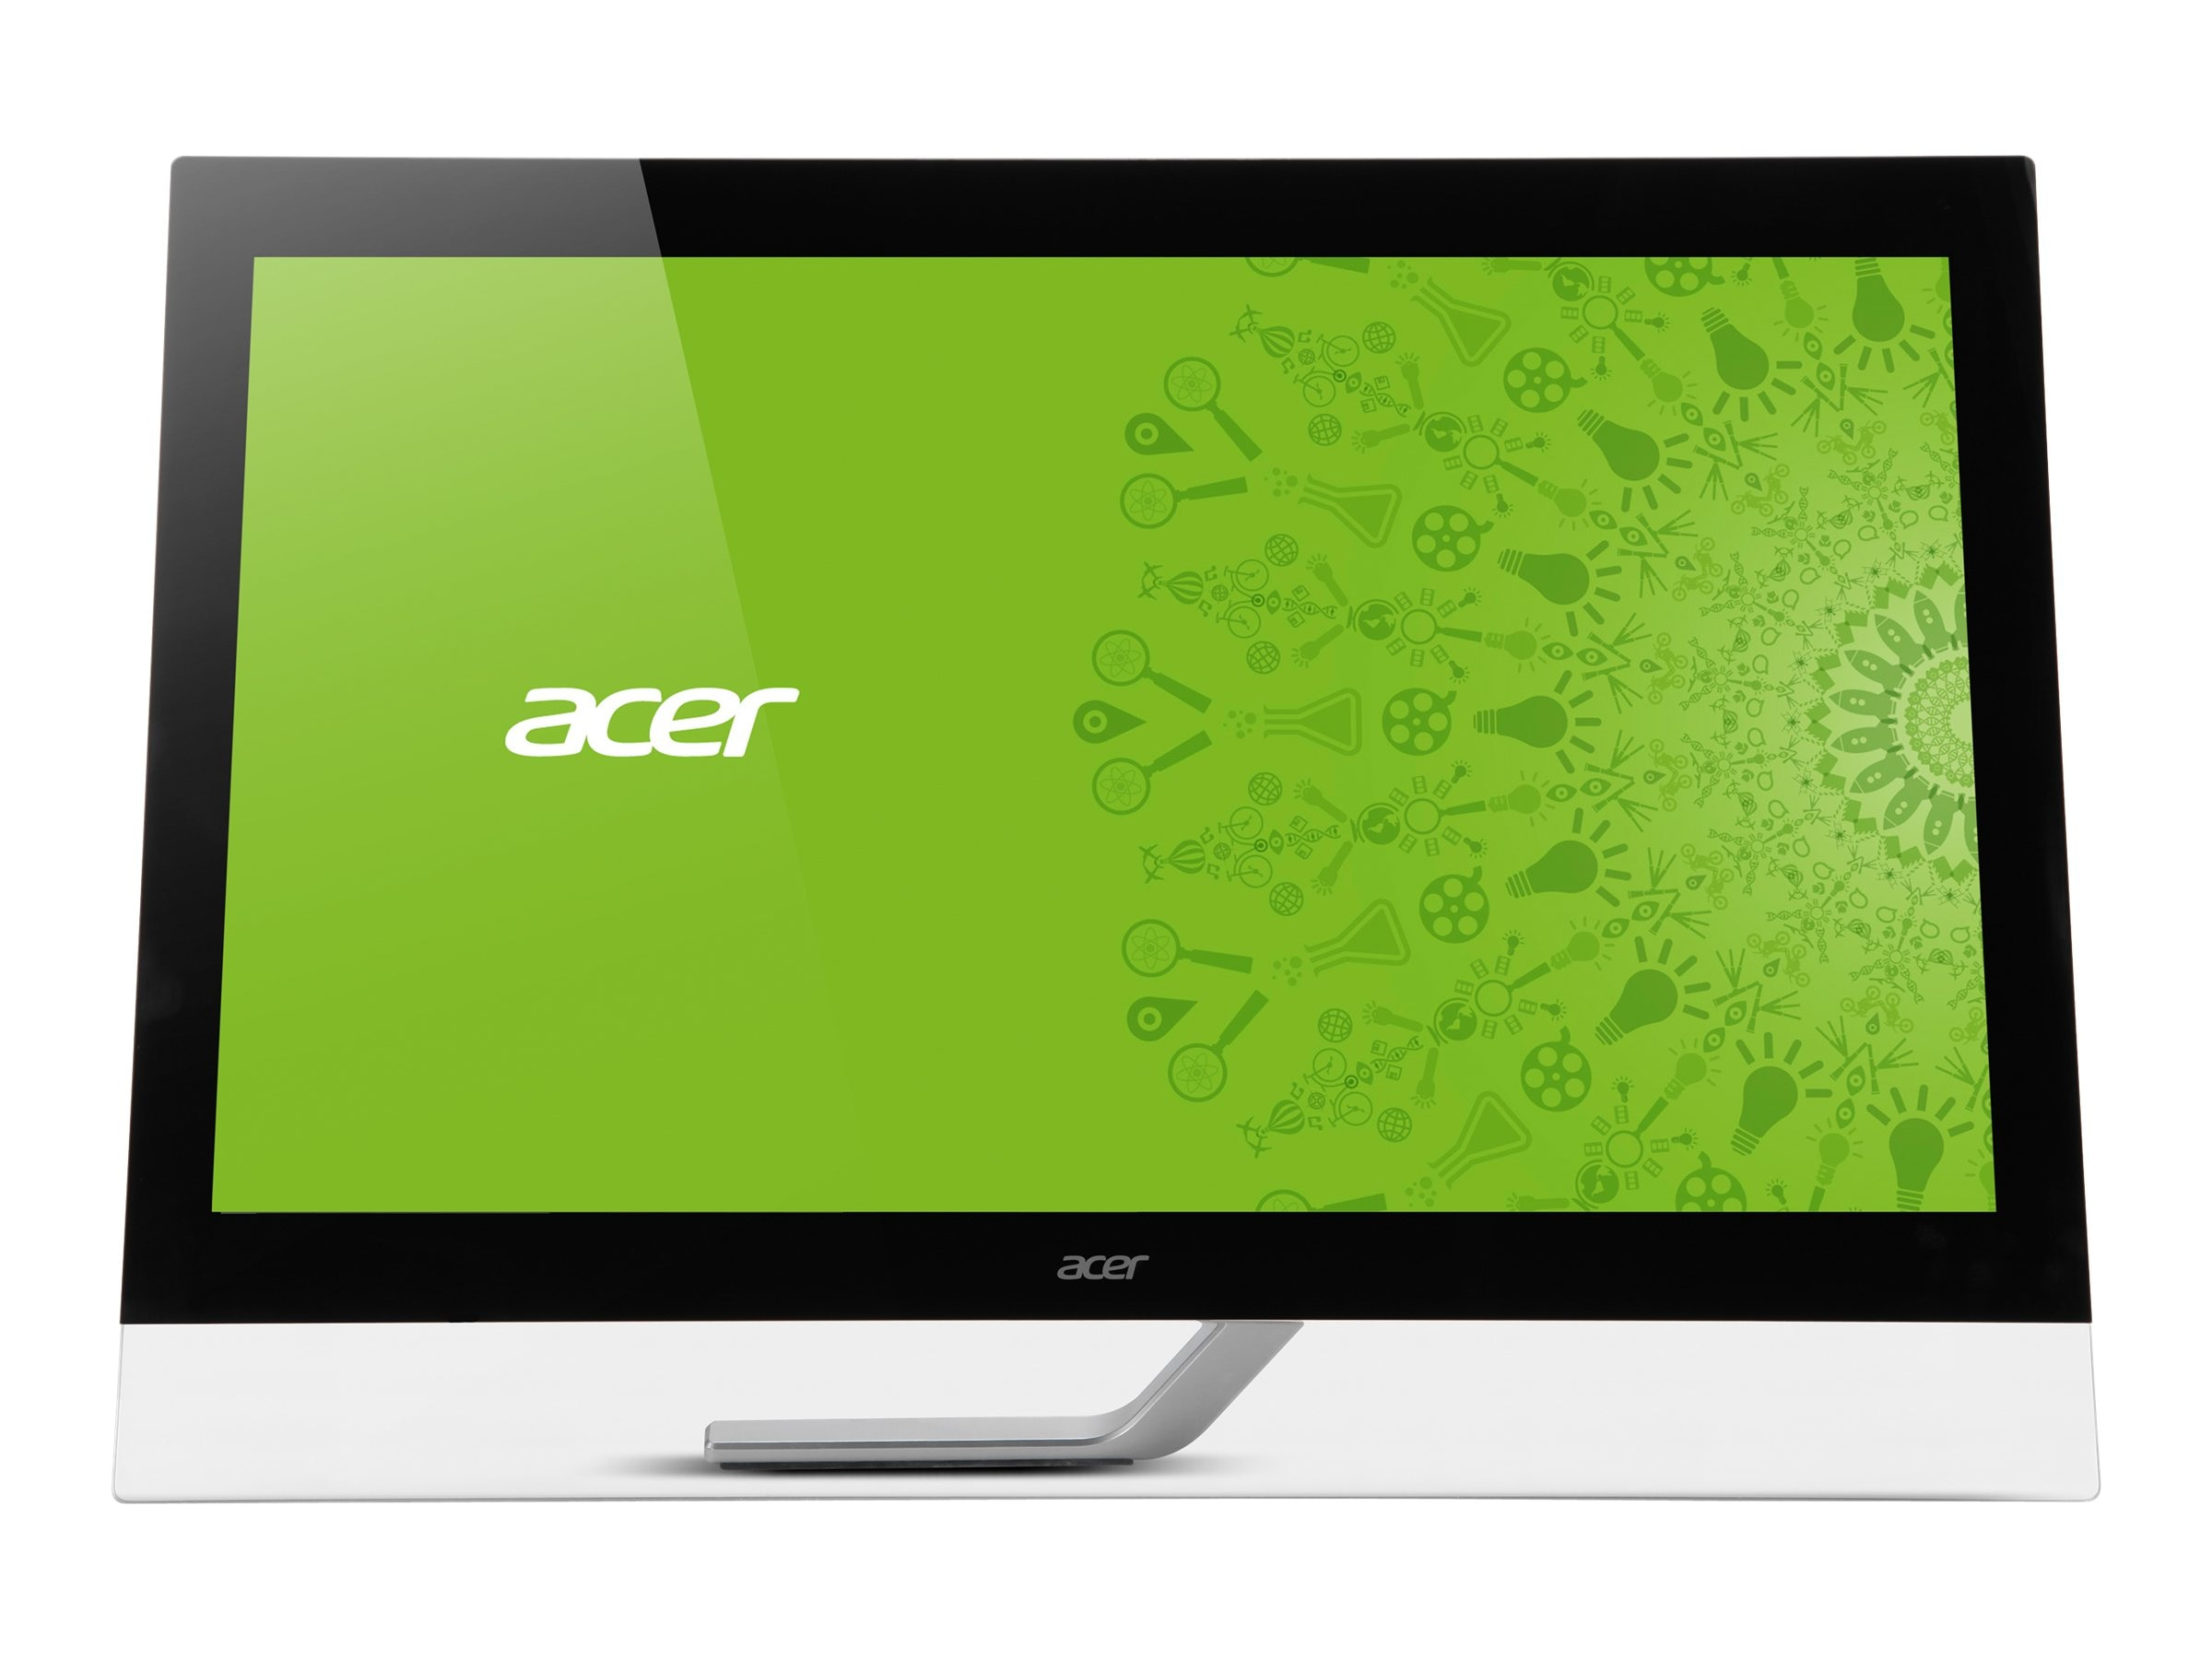 Acer 27 T272HL bmjjz Full HD Touchscreen Monitor, Black, UM.HT2AA.003, 16738368, Monitors - Touchscreen